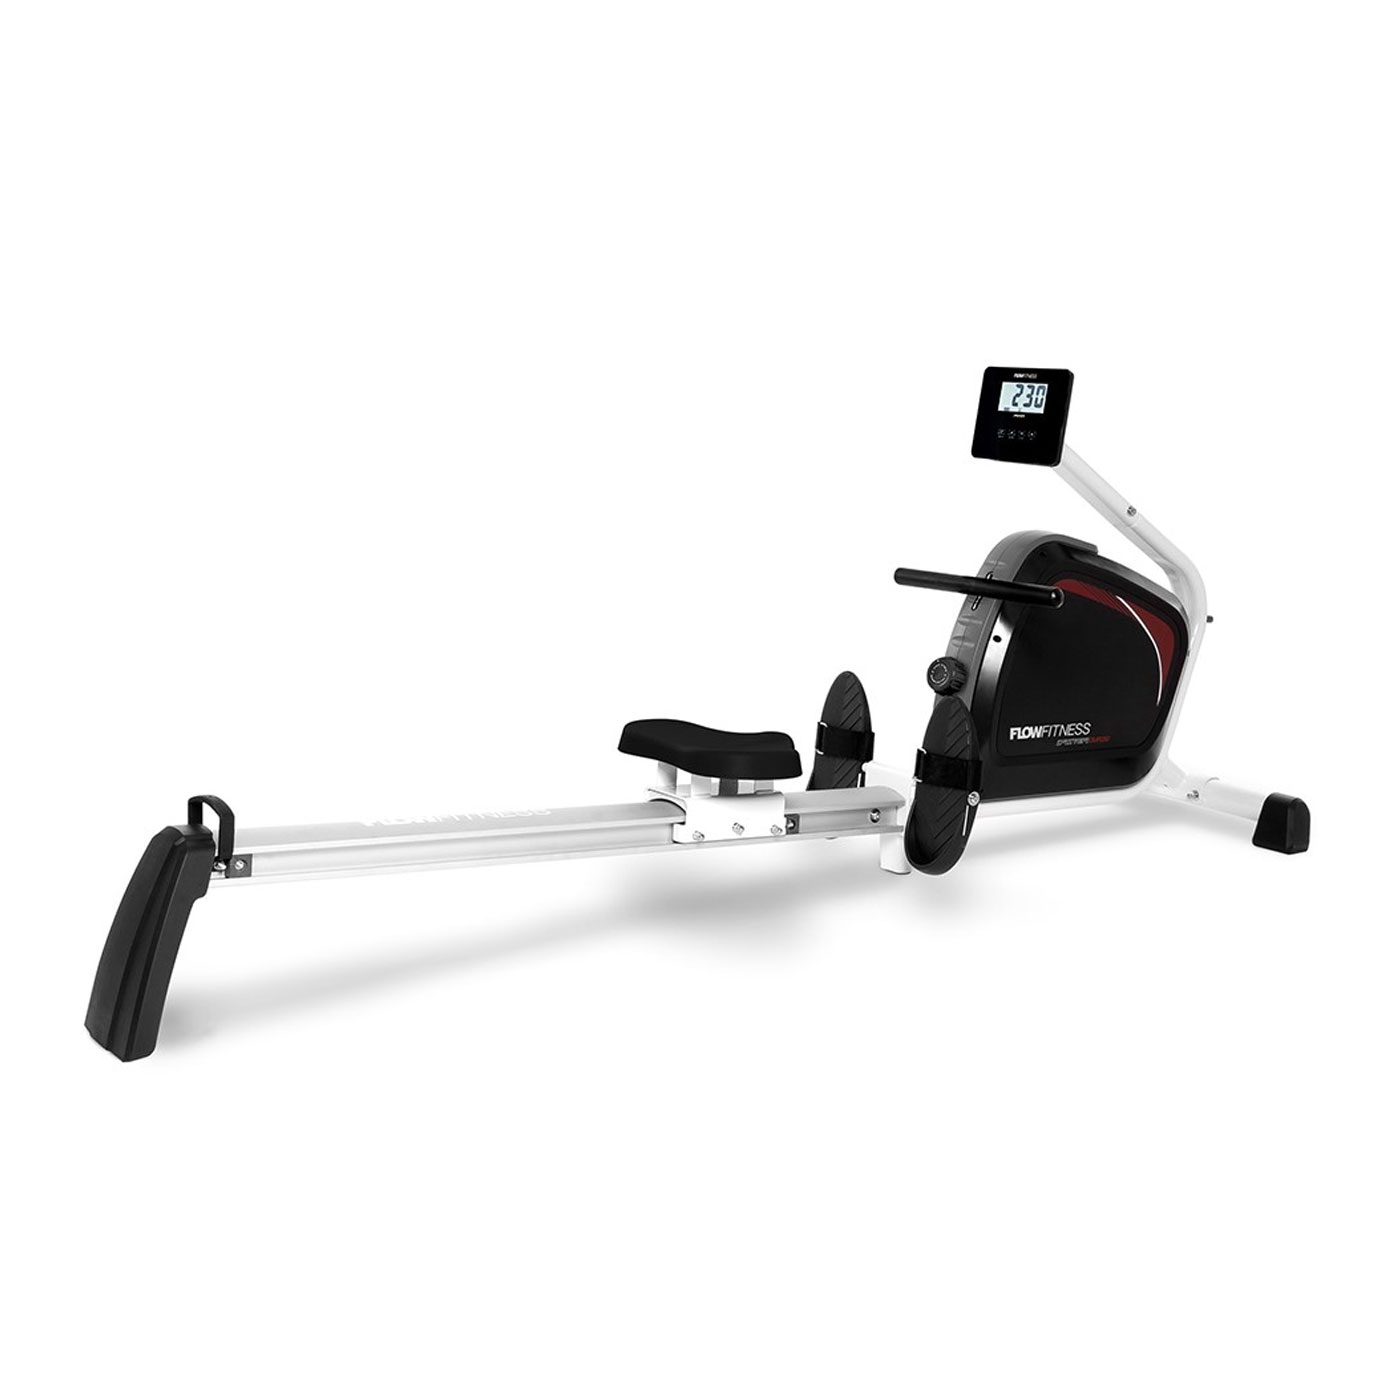 Flow Fitness DRIVER DMR250 Roeitrainer